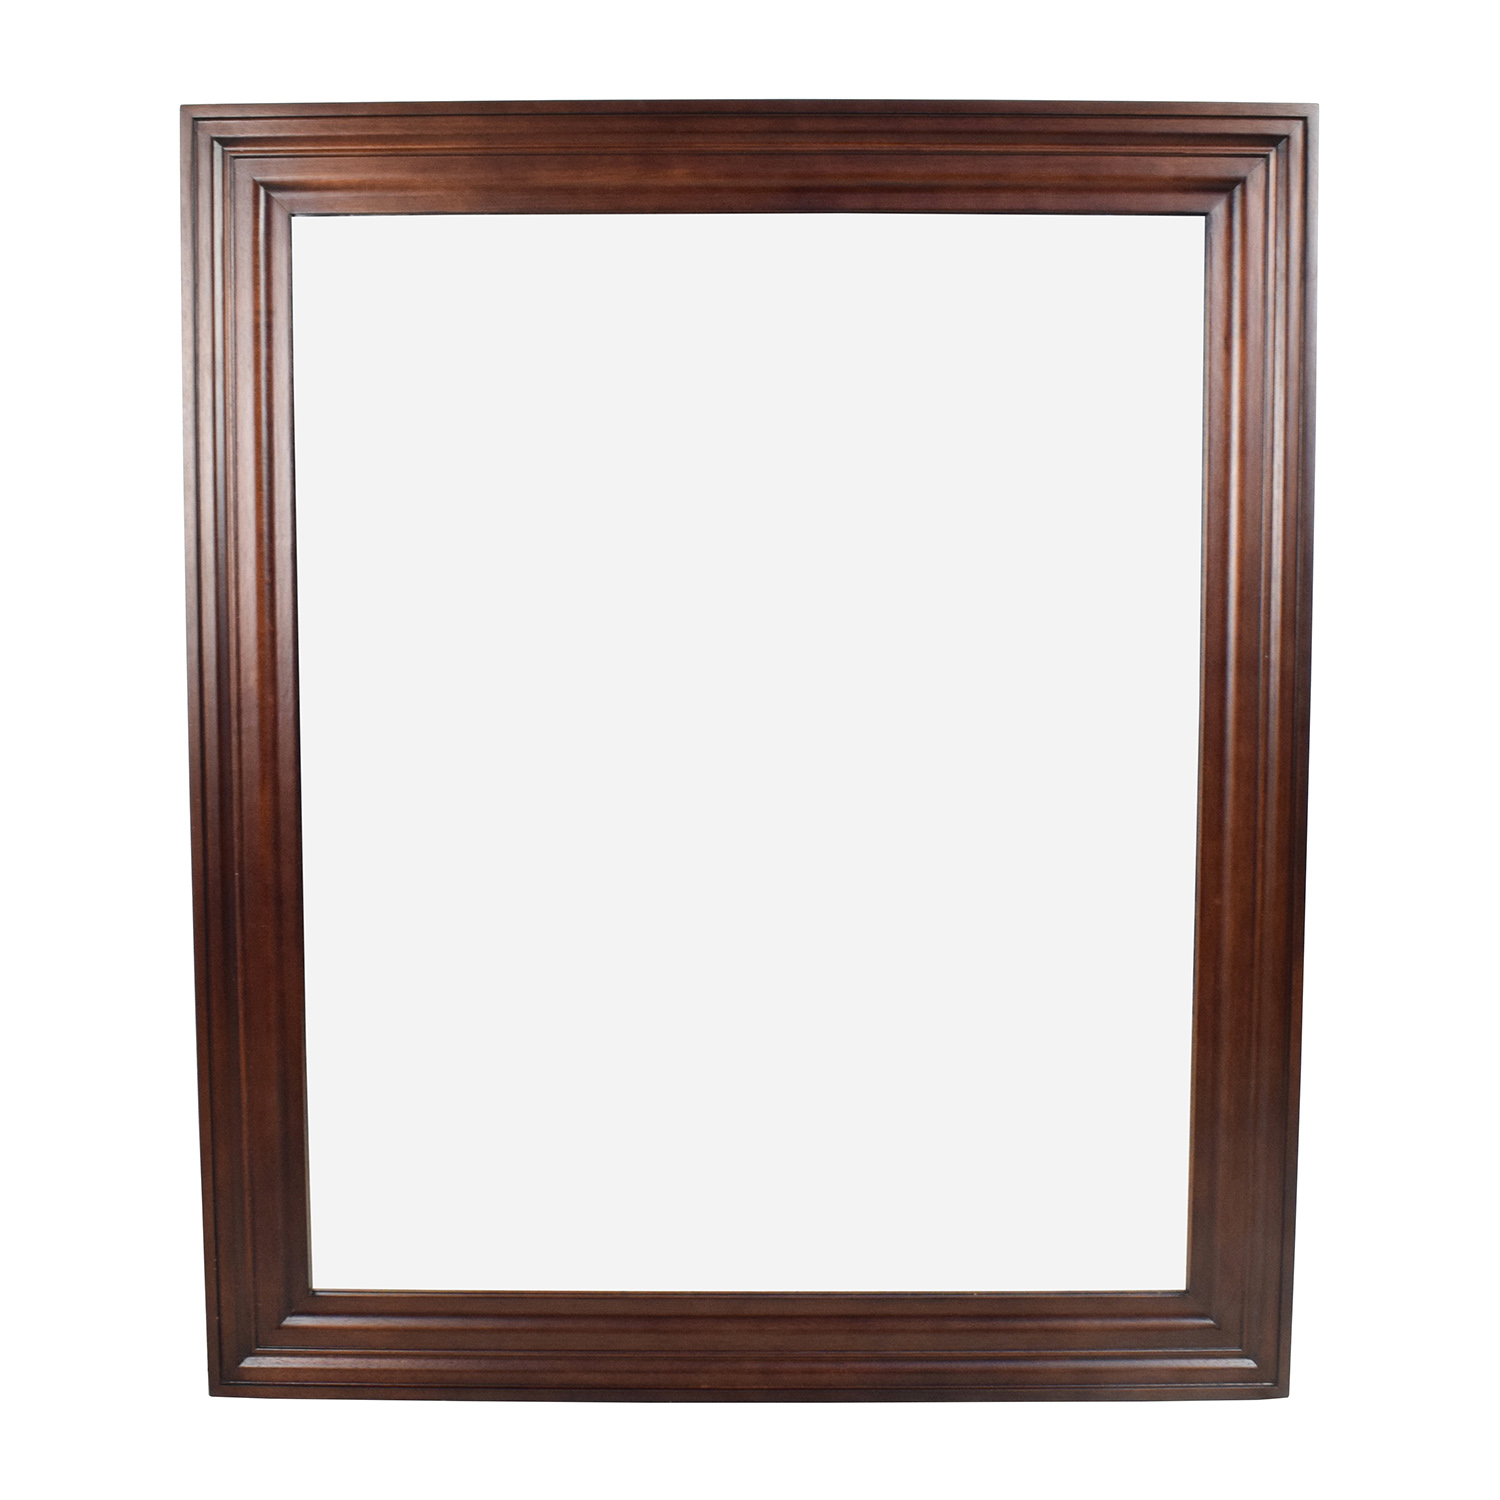 Large Wood Framed Mirror dimensions